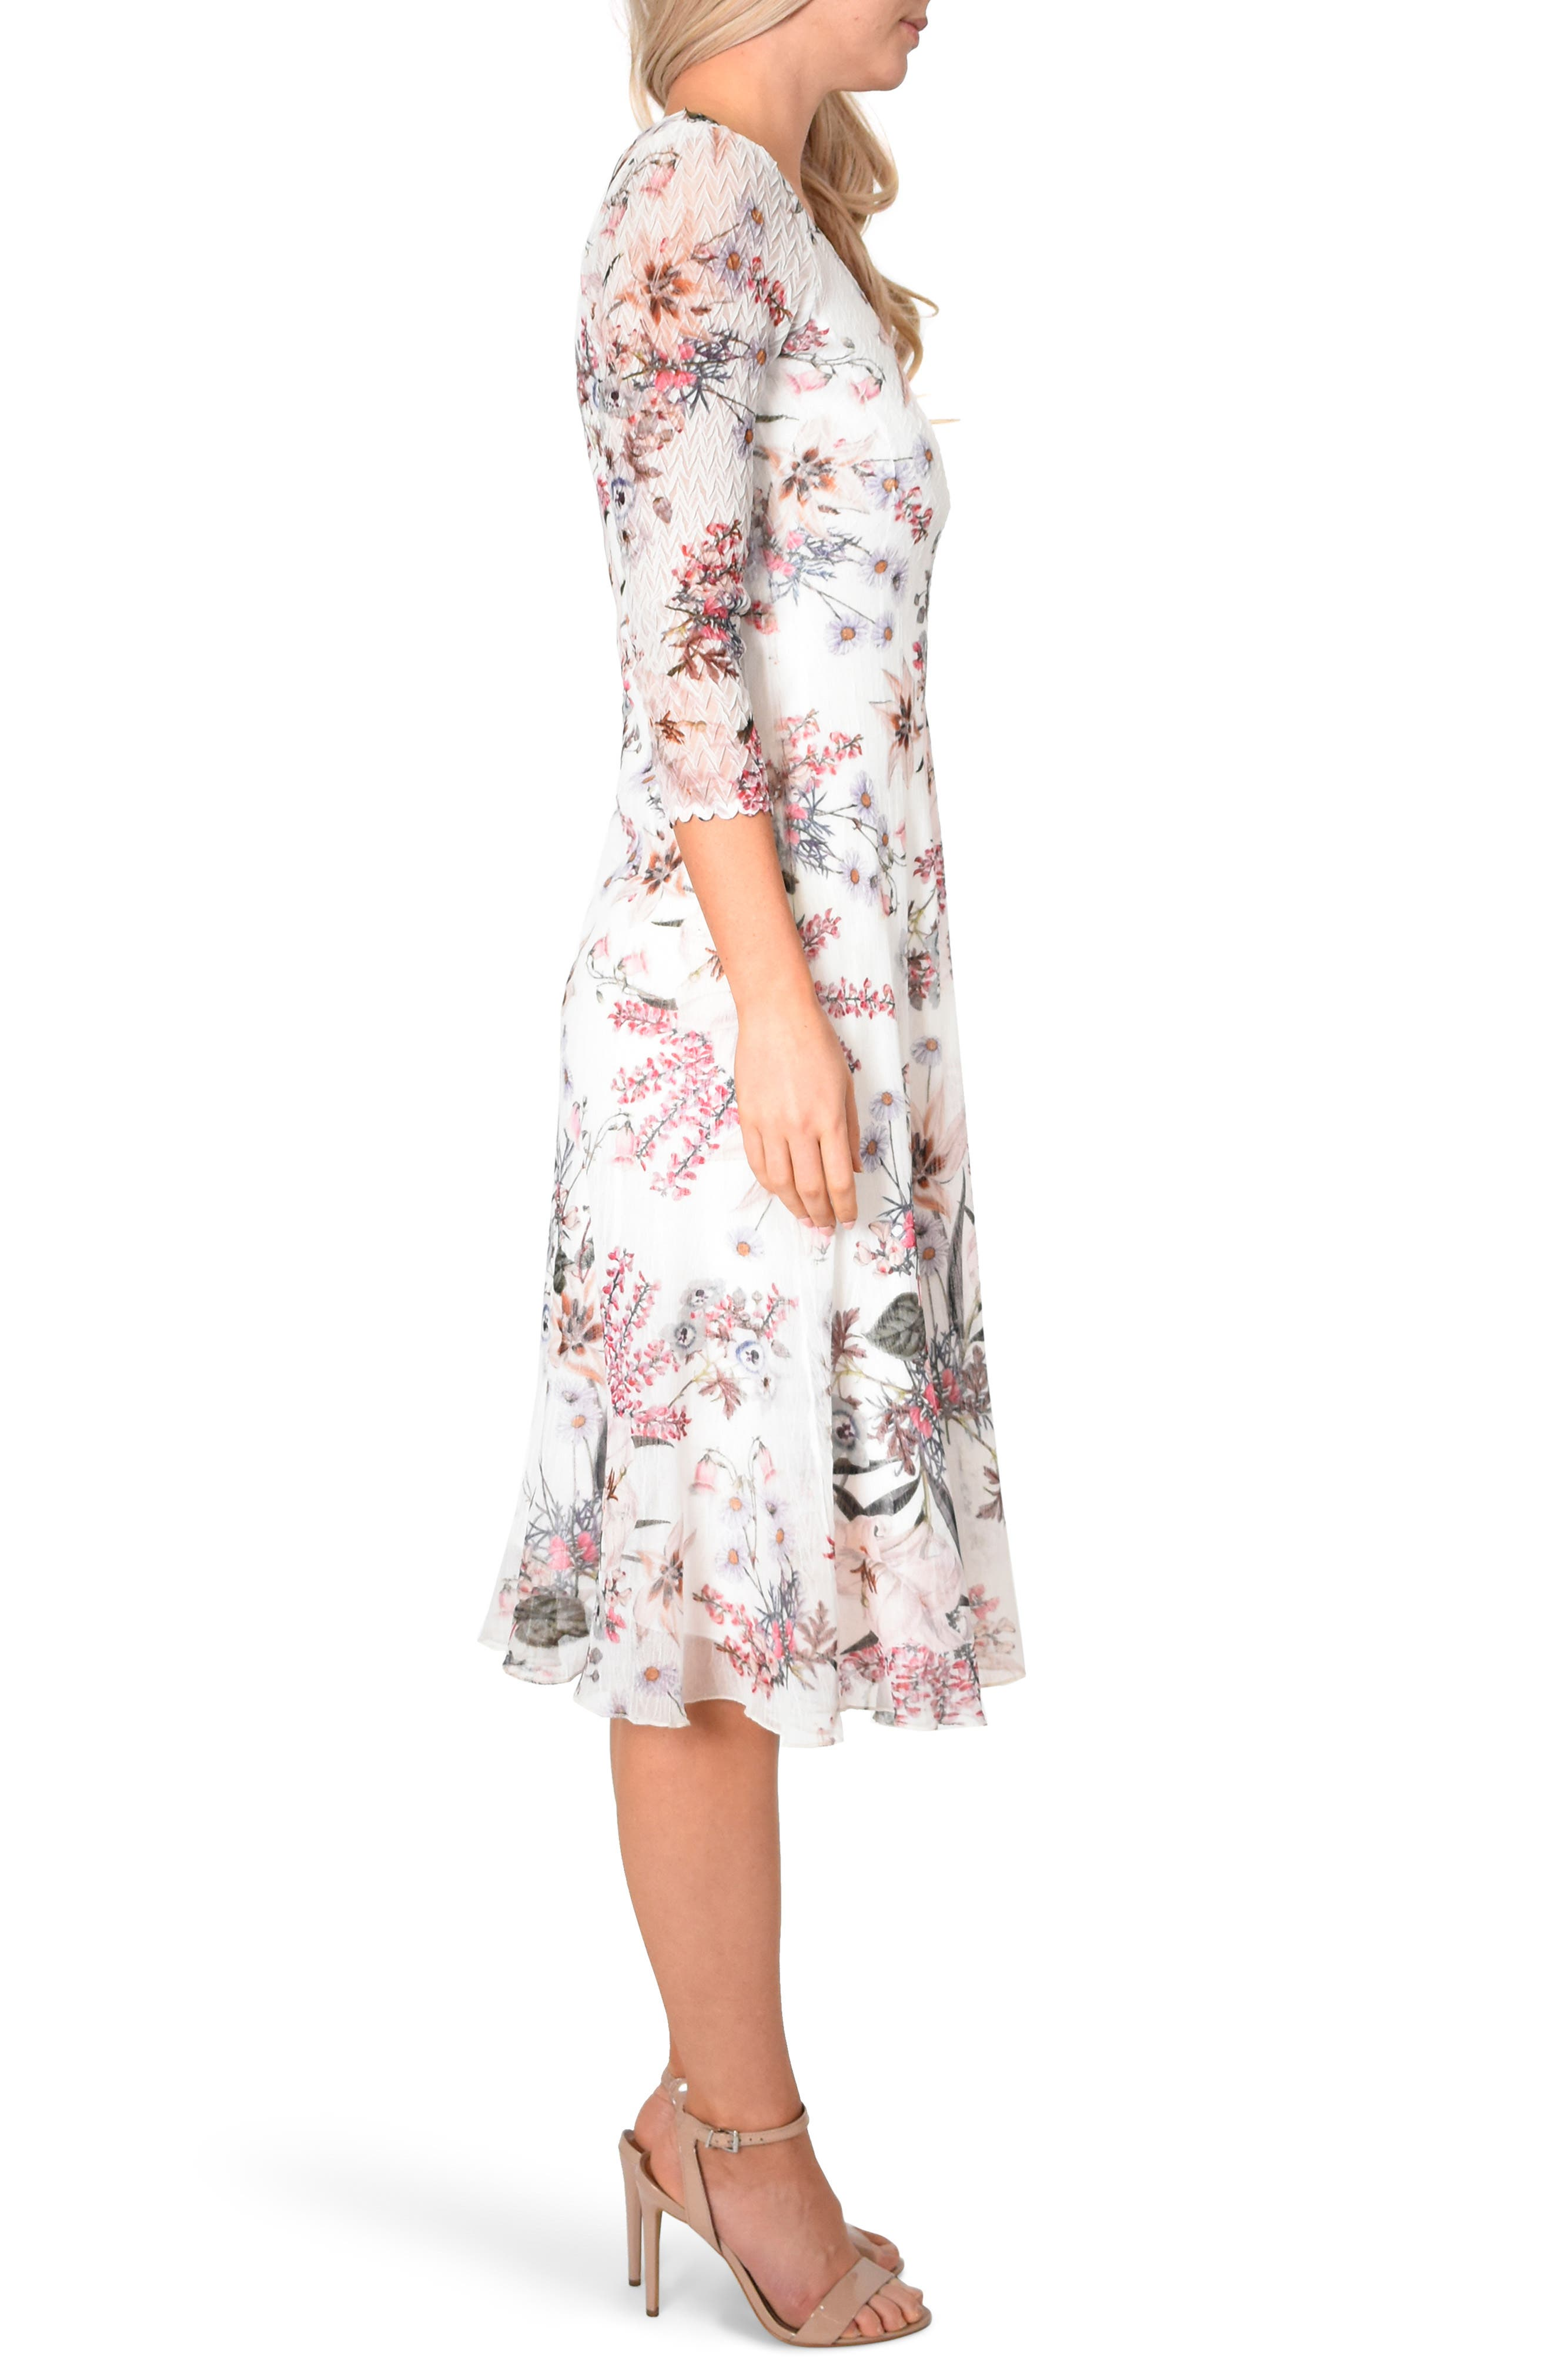 KOMAROV, Floral Chiffon MIdi Dress, Alternate thumbnail 3, color, SPRING ORCHARD